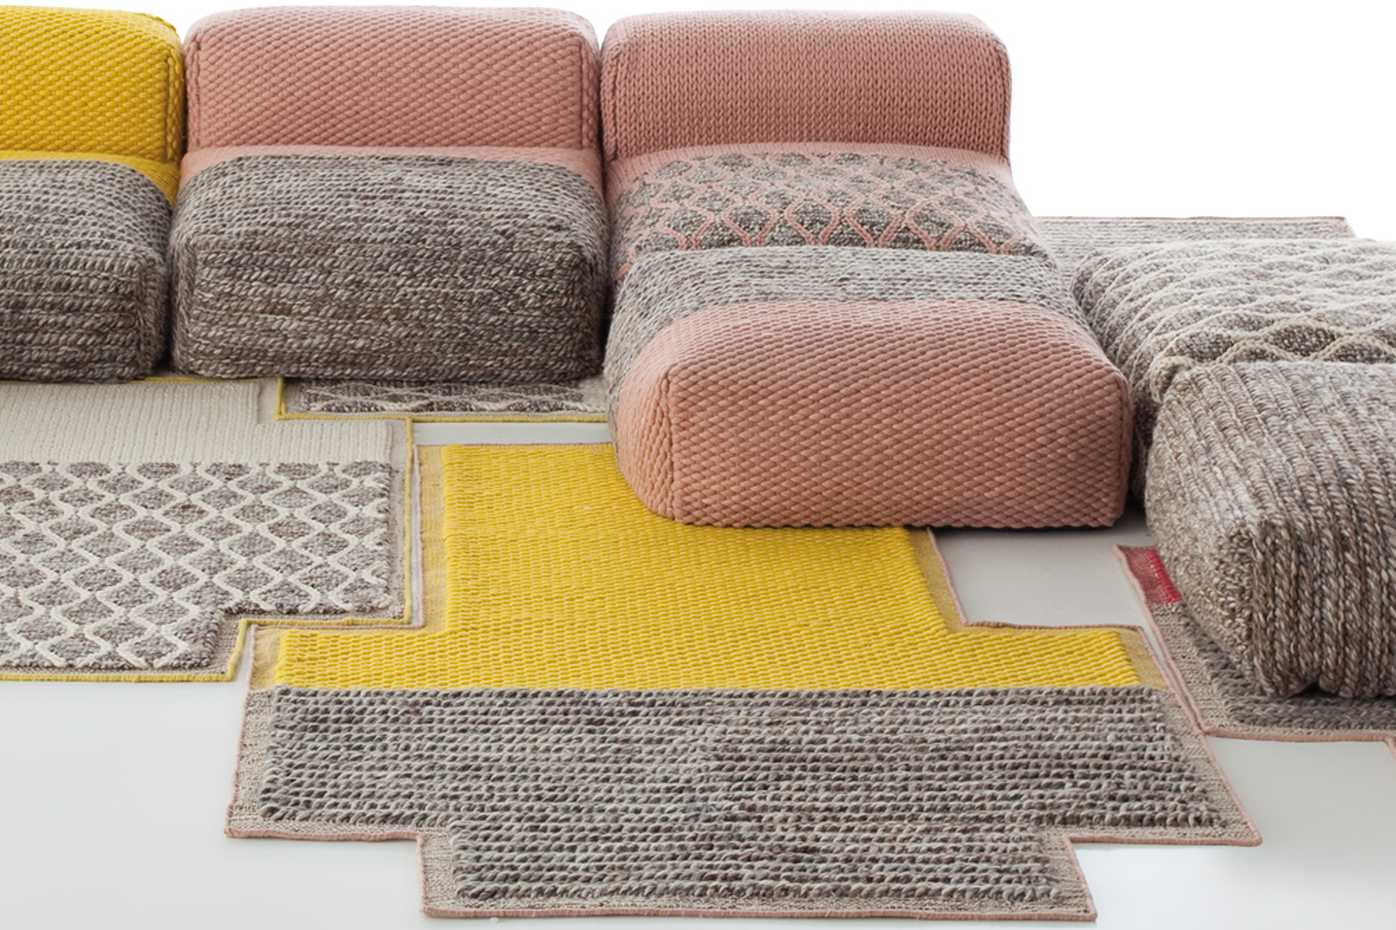 Mangas Space Rugs by Gan Rugs product image 2